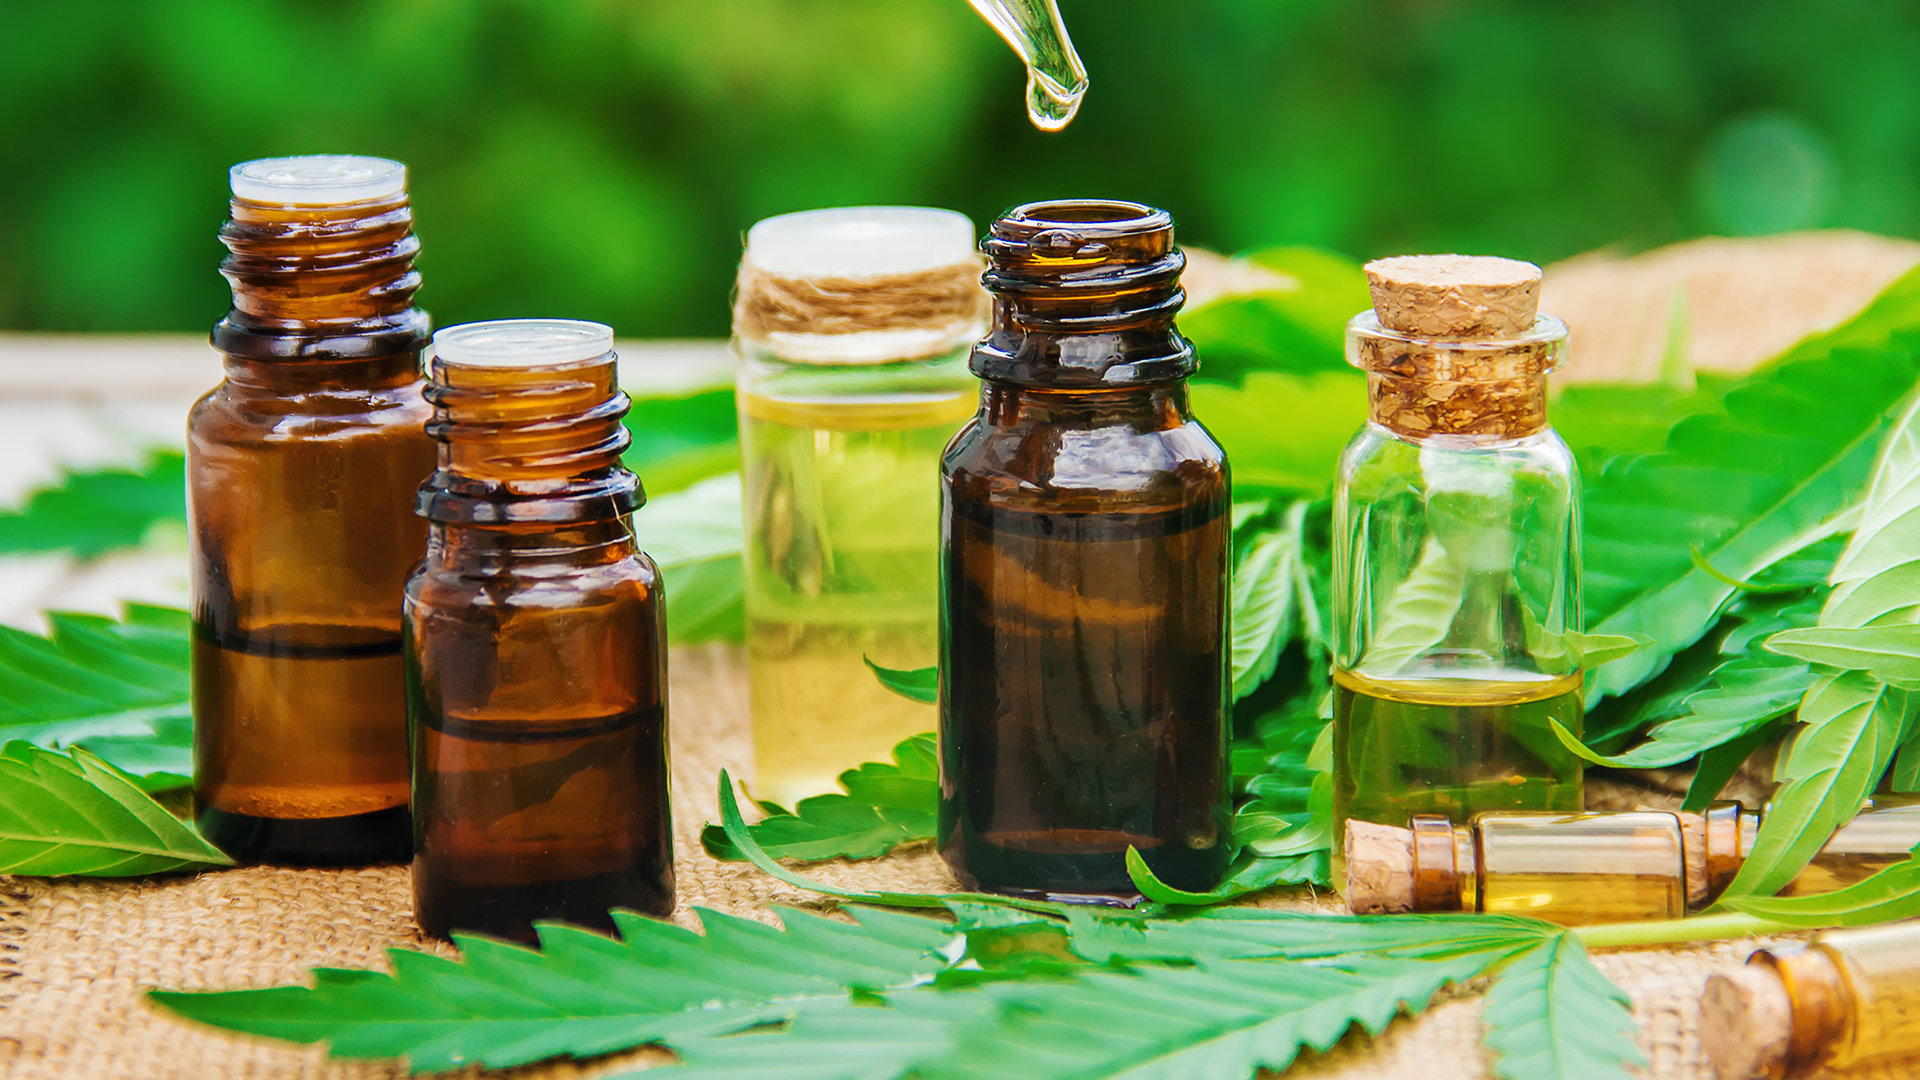 Major Well being Benefits of CBD or CBD Oil